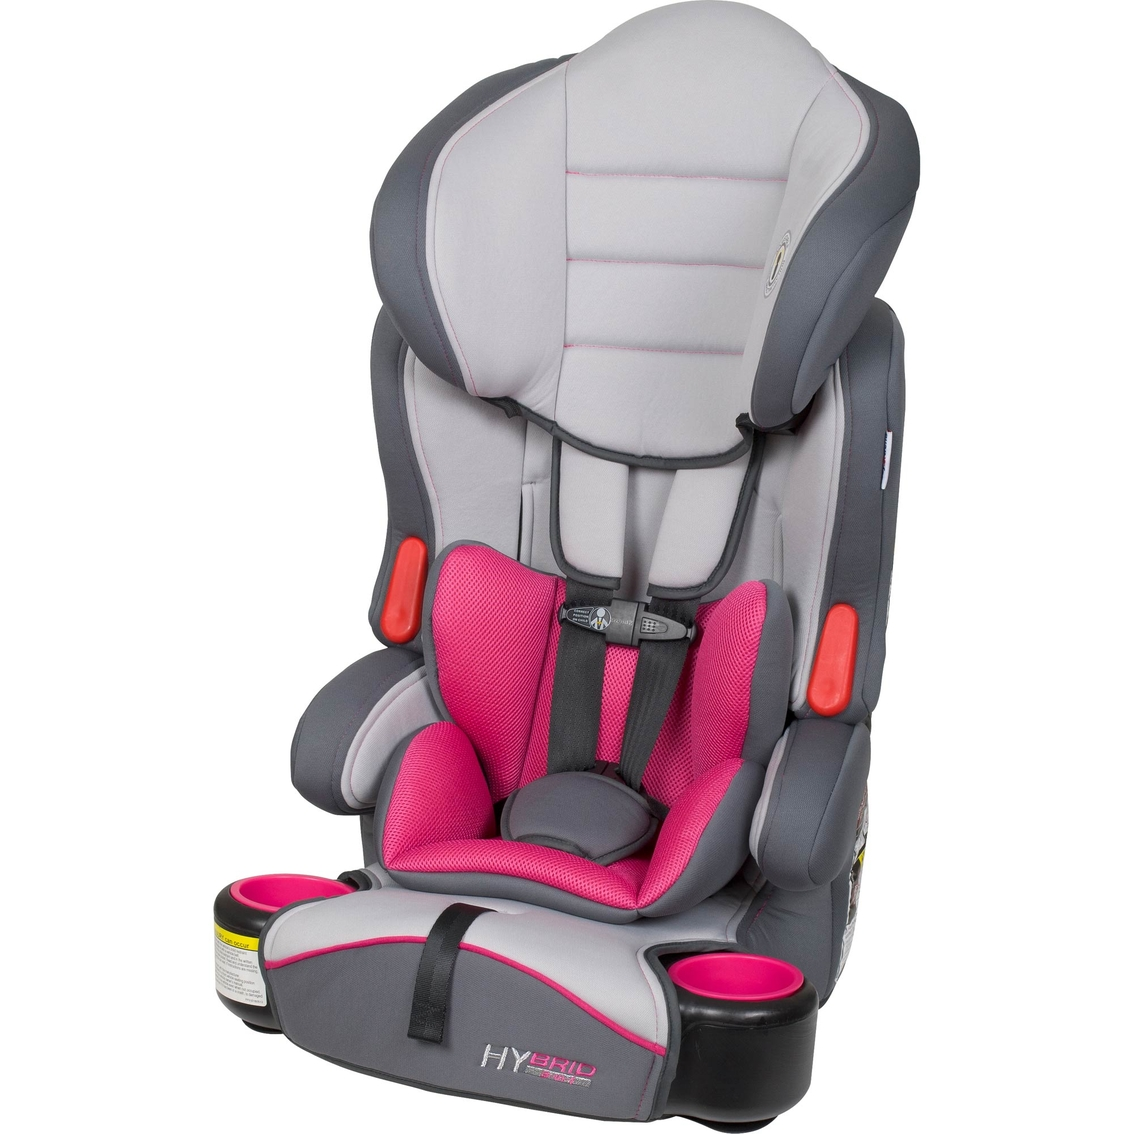 baby trend hybrid melody 3 in 1 car seat convertible seats baby toys shop the exchange. Black Bedroom Furniture Sets. Home Design Ideas